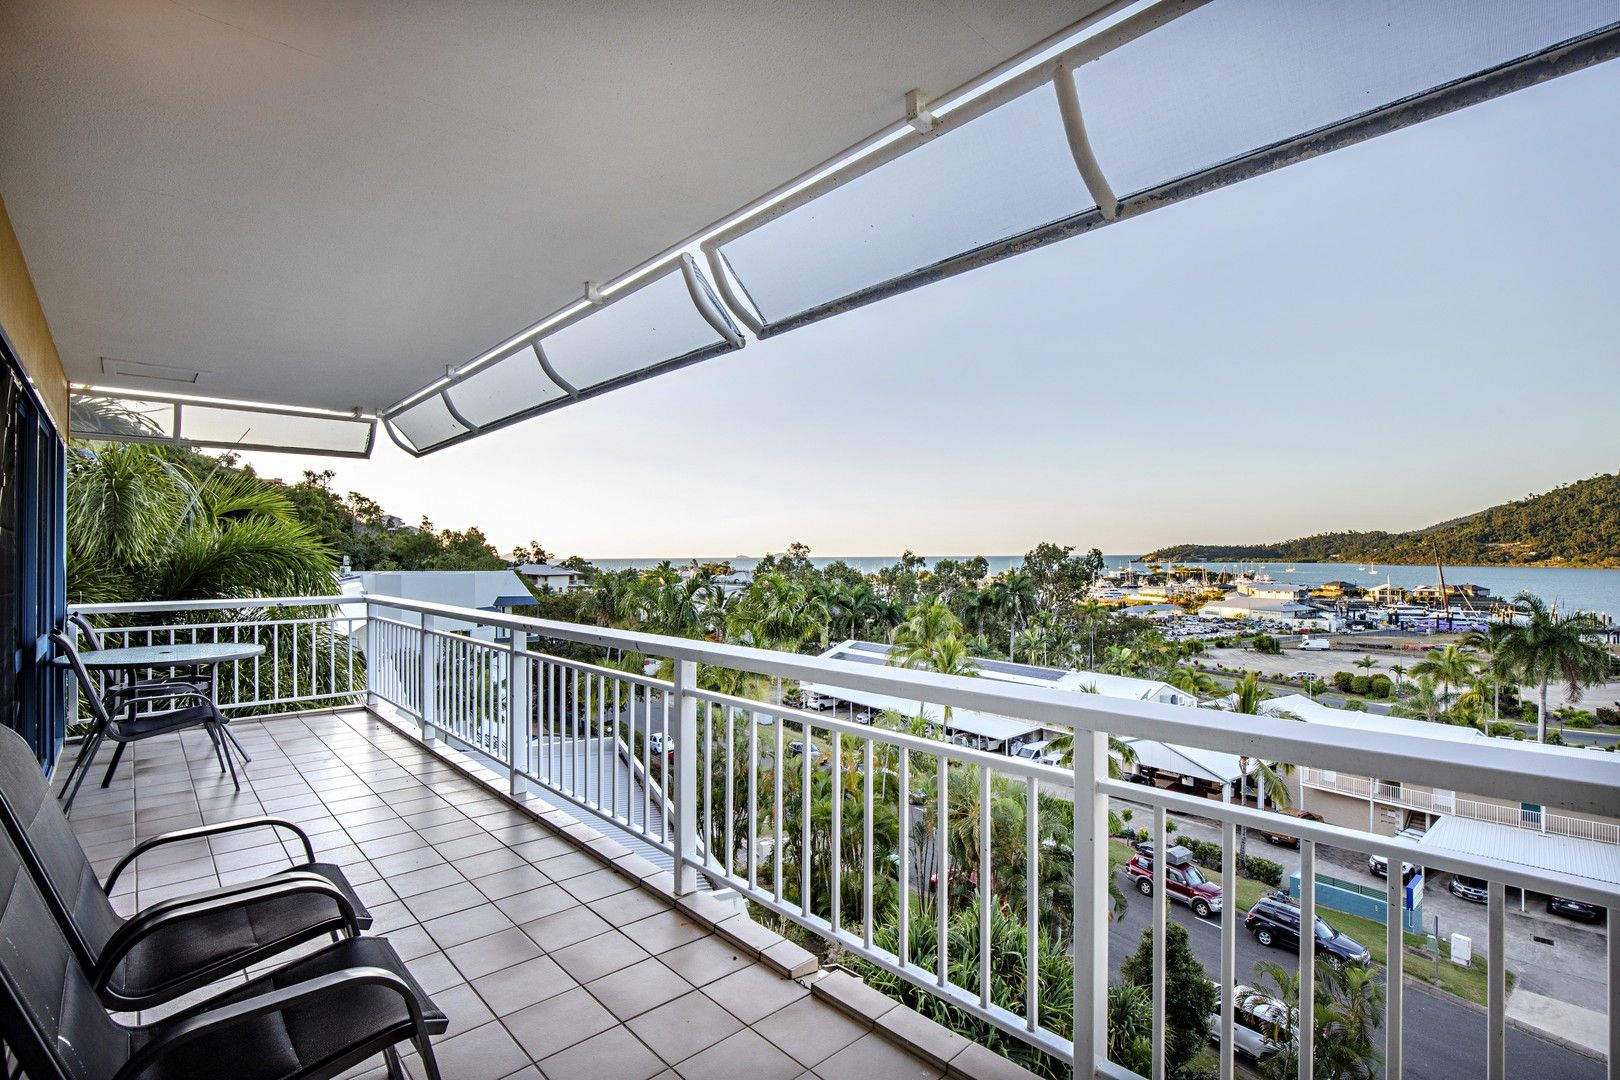 5/5 Hermitage Drive, Airlie Beach QLD 4802, Image 0